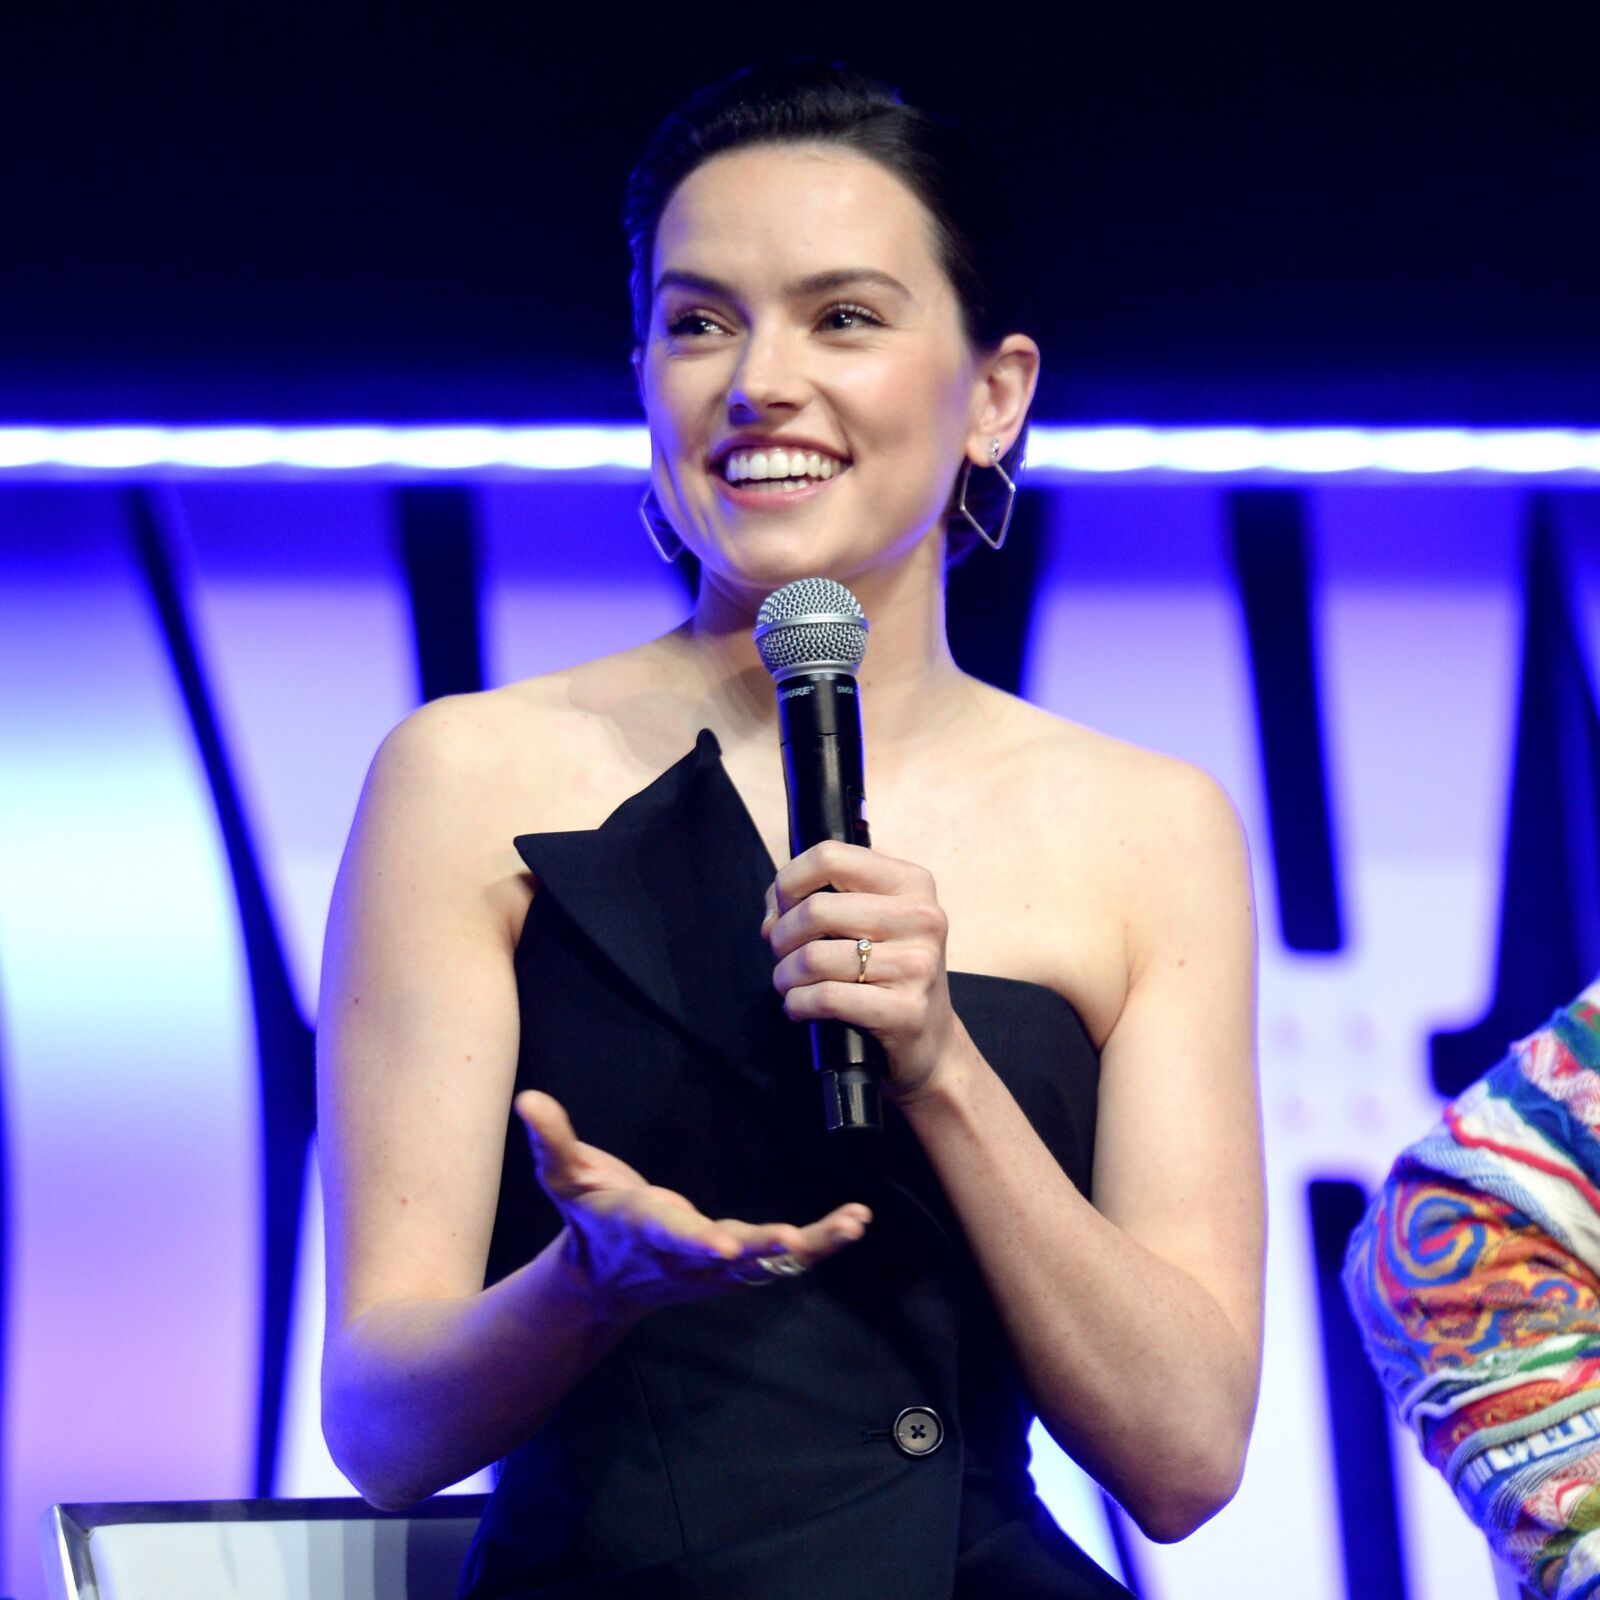 Daisy Ridley may be up for a role in another big movie franchise